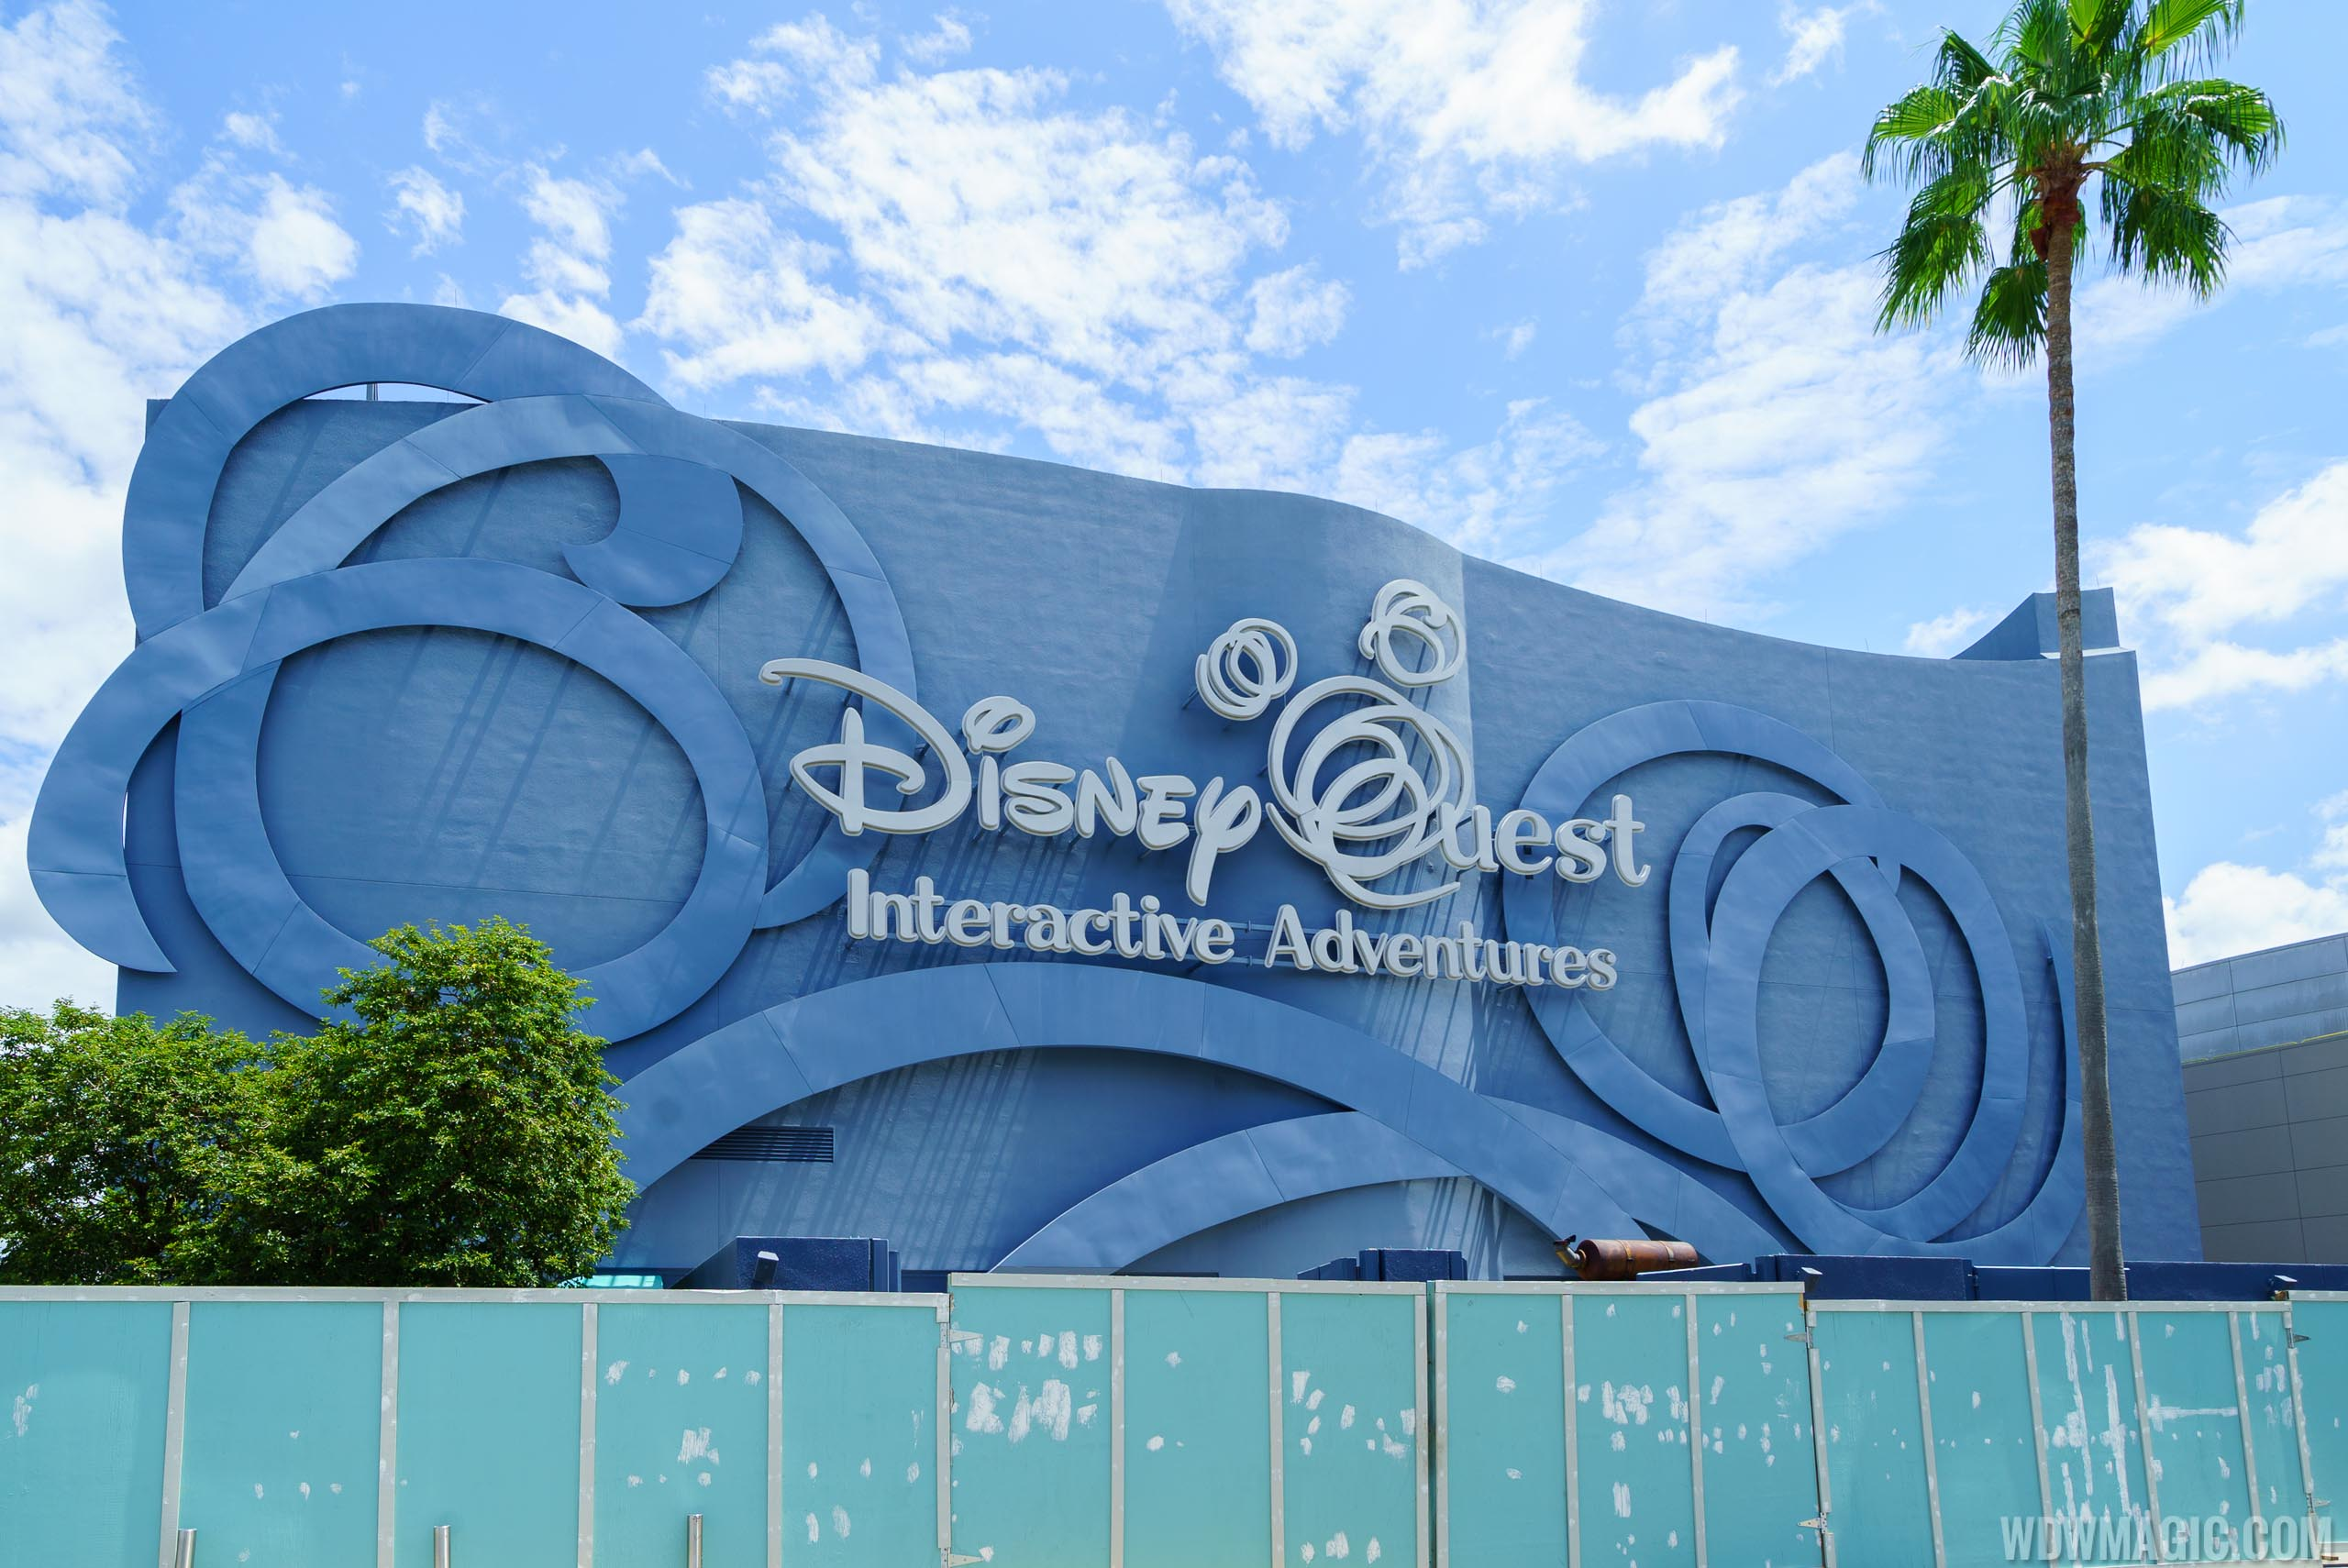 Walls around closed Disney Quest